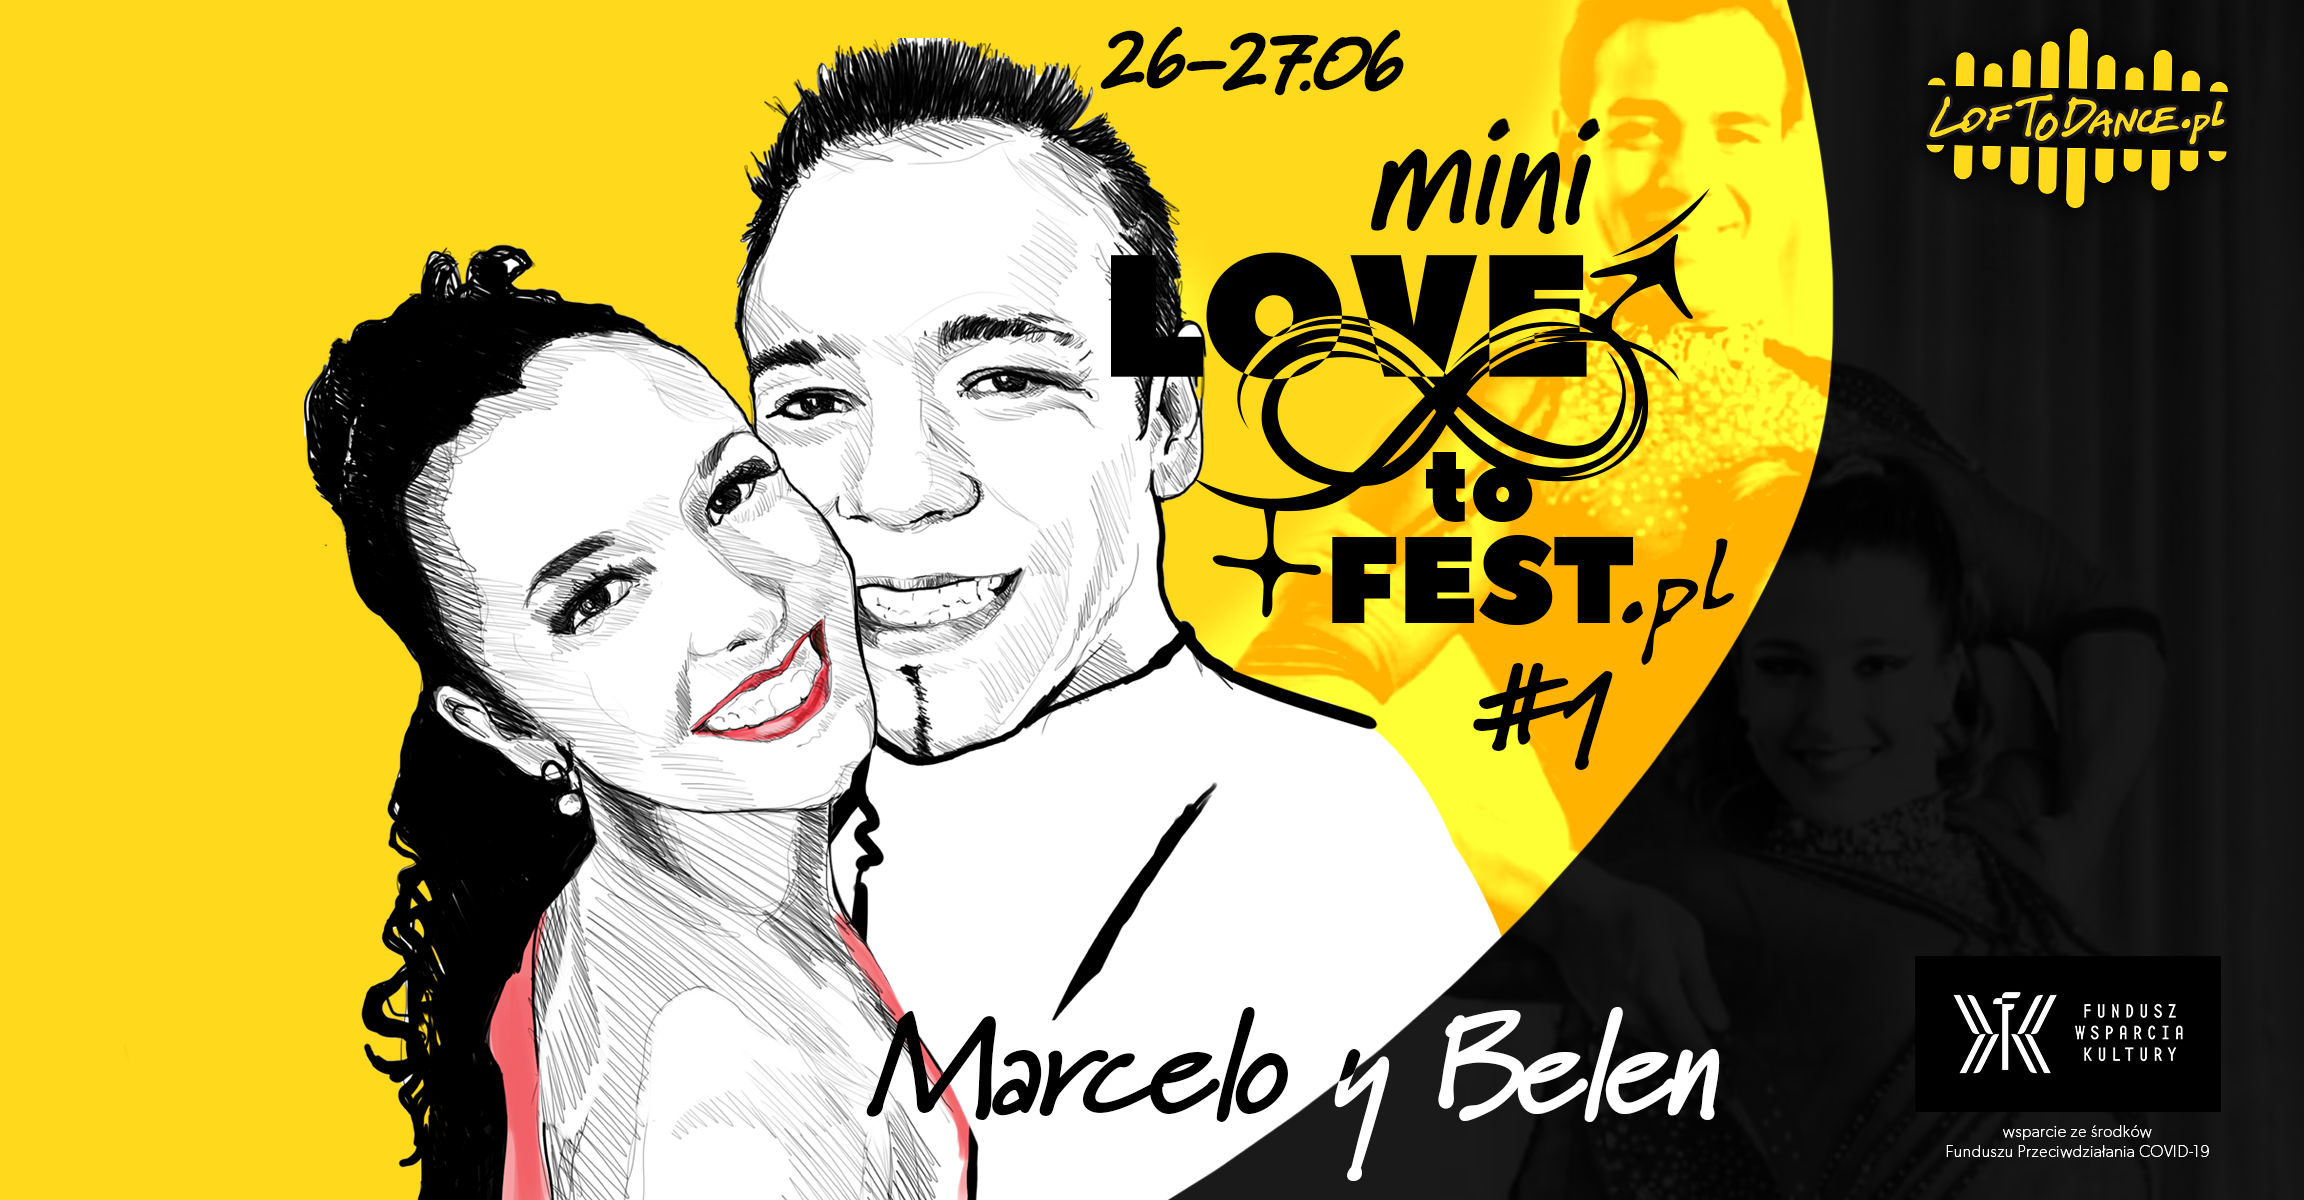 Mini LOVEtoFEST #1 with Marcelo y Belen